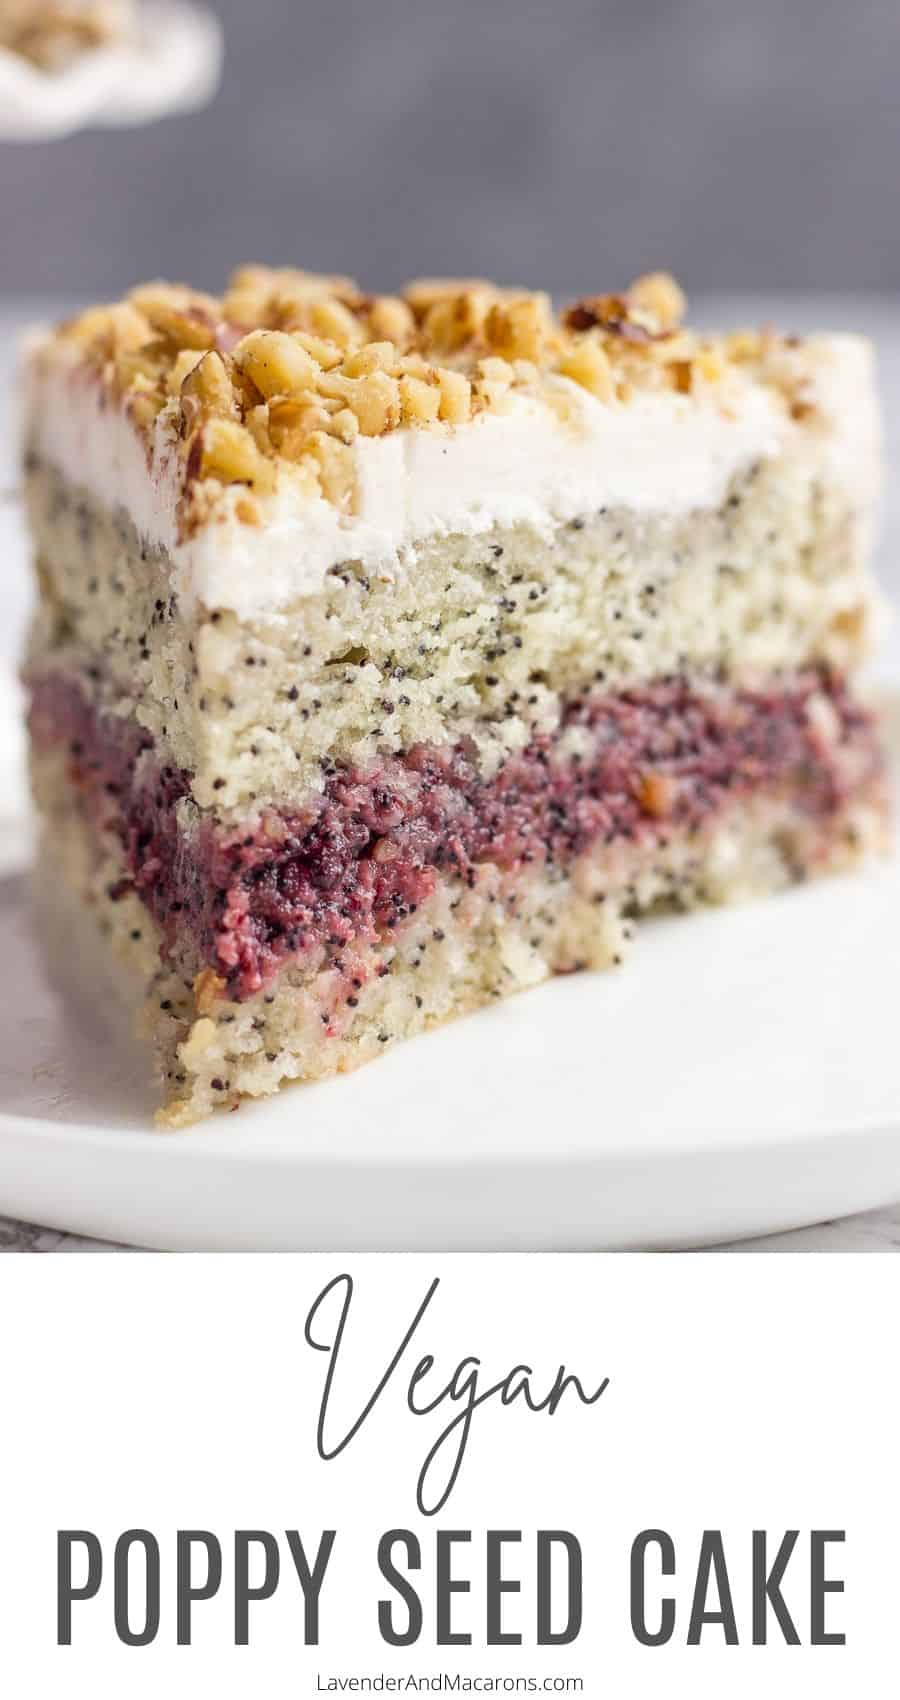 Pinterest image of healthy poppy seed cake